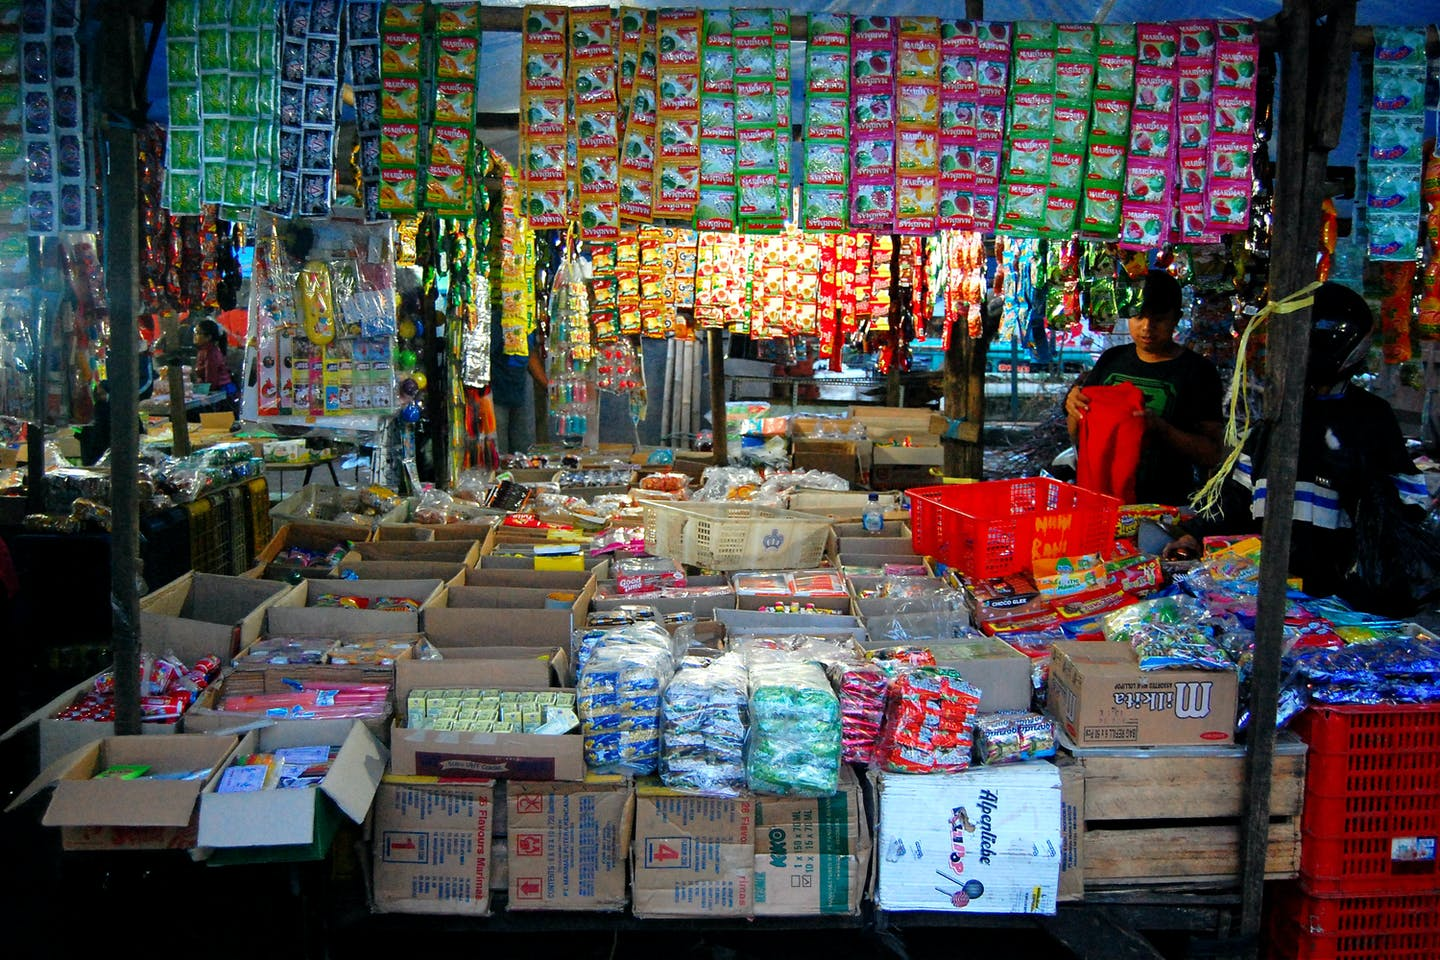 A provision store in Bandung with many plastic sachets